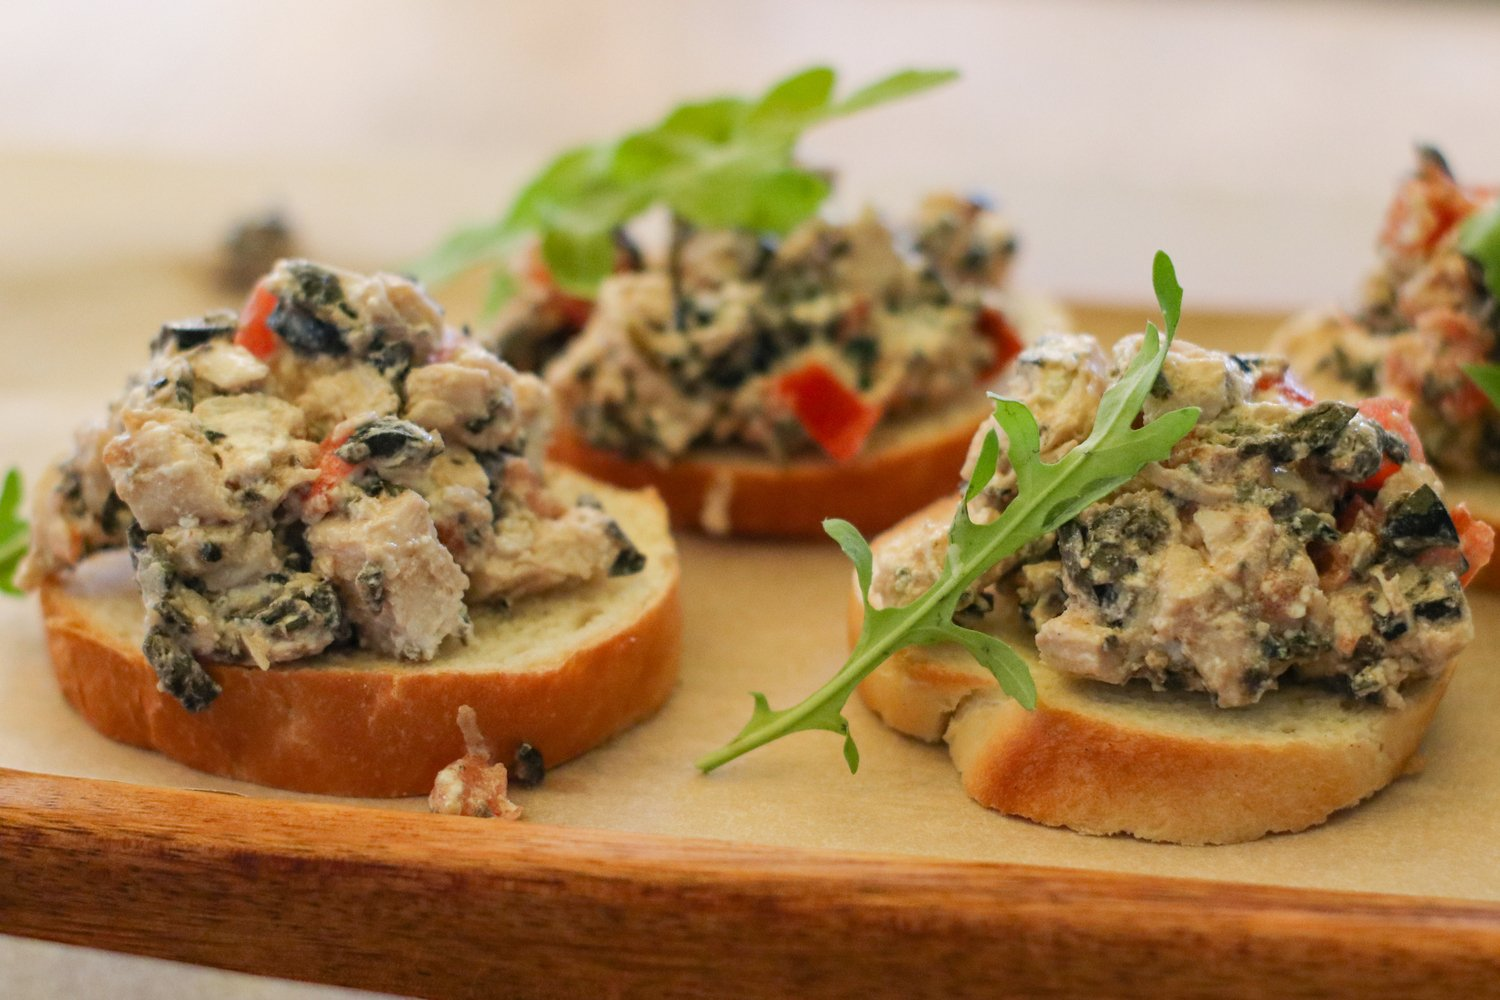 sandwiches with mushrooms and ham and arugula for a snack example image 1